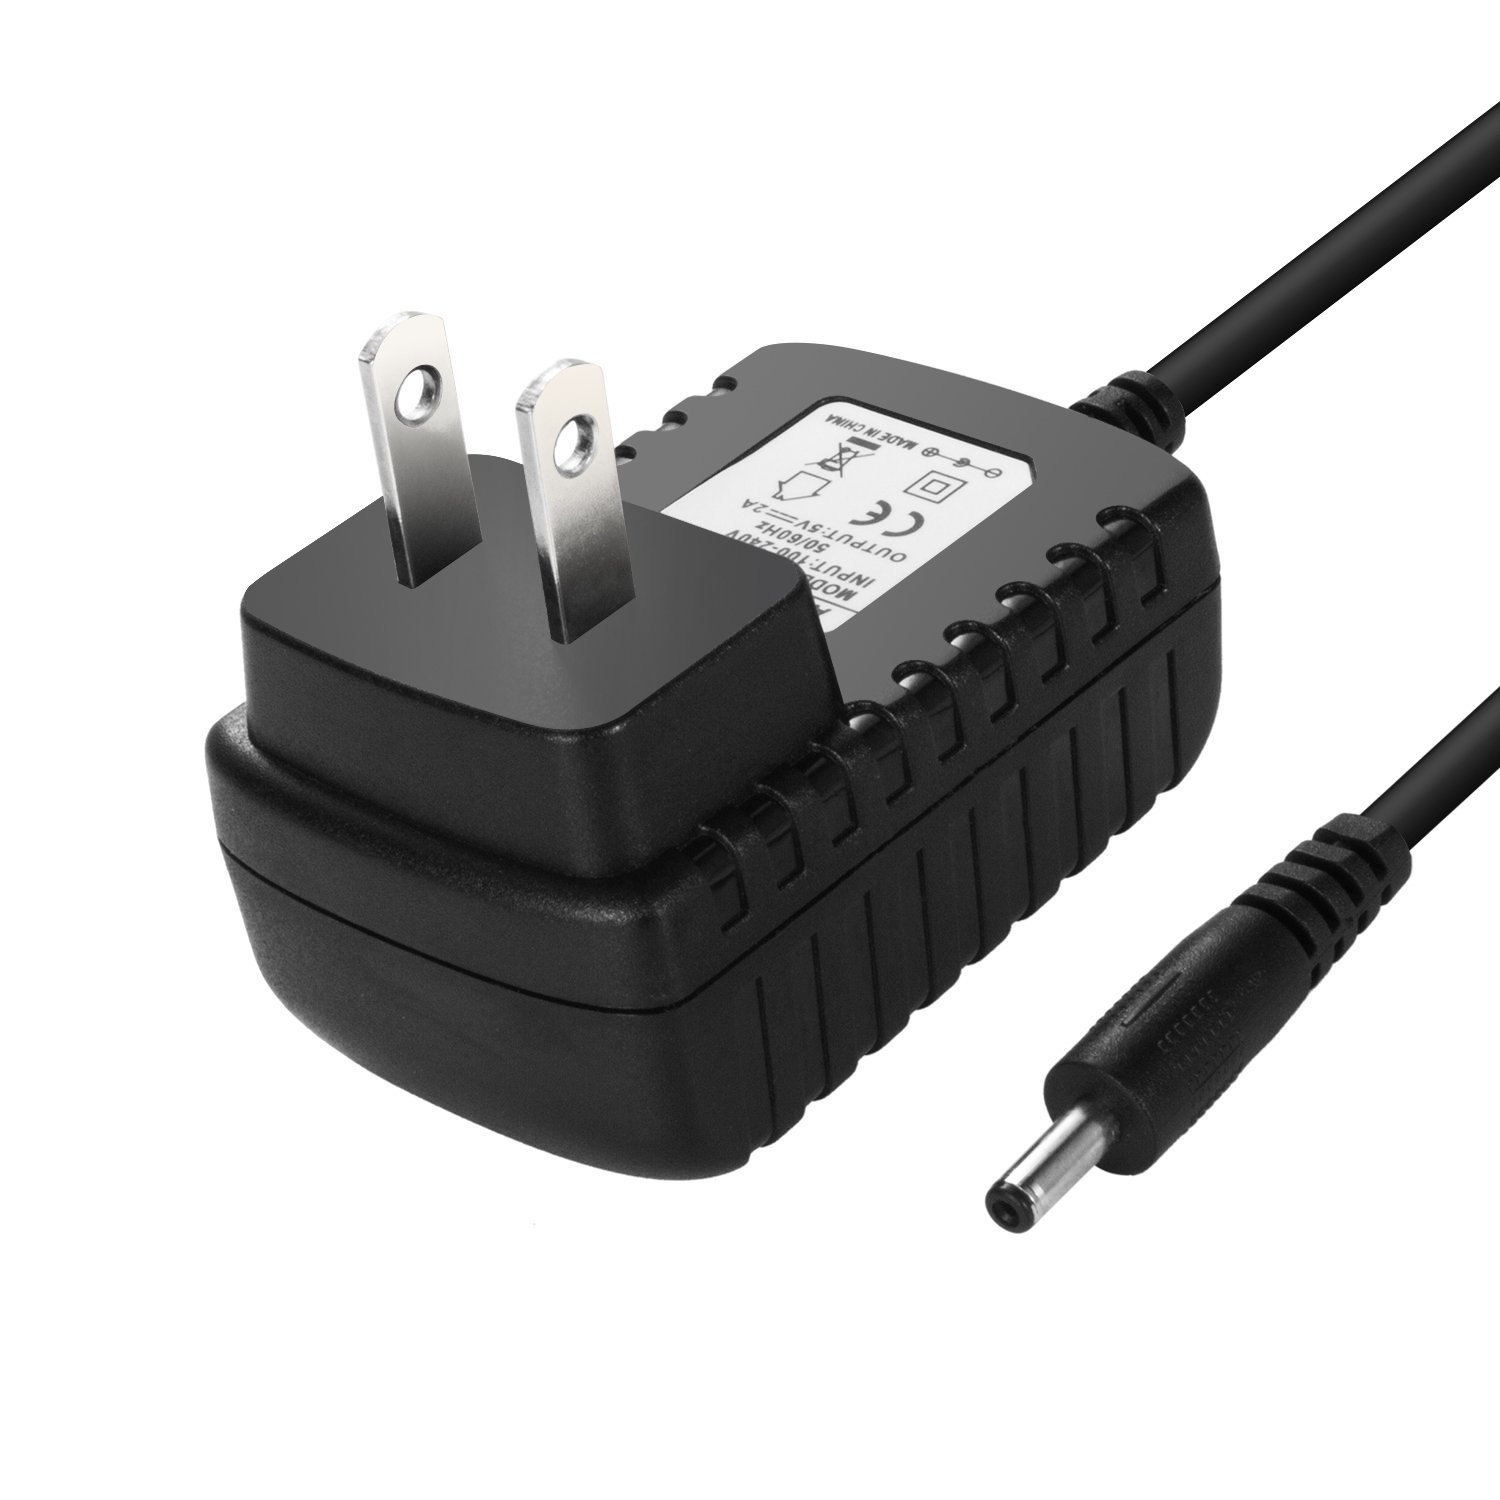 Cateck DC 5V 2A/2000mah charger 3.5mm AC Power Adapter Wall Charger, Black (US Plug)